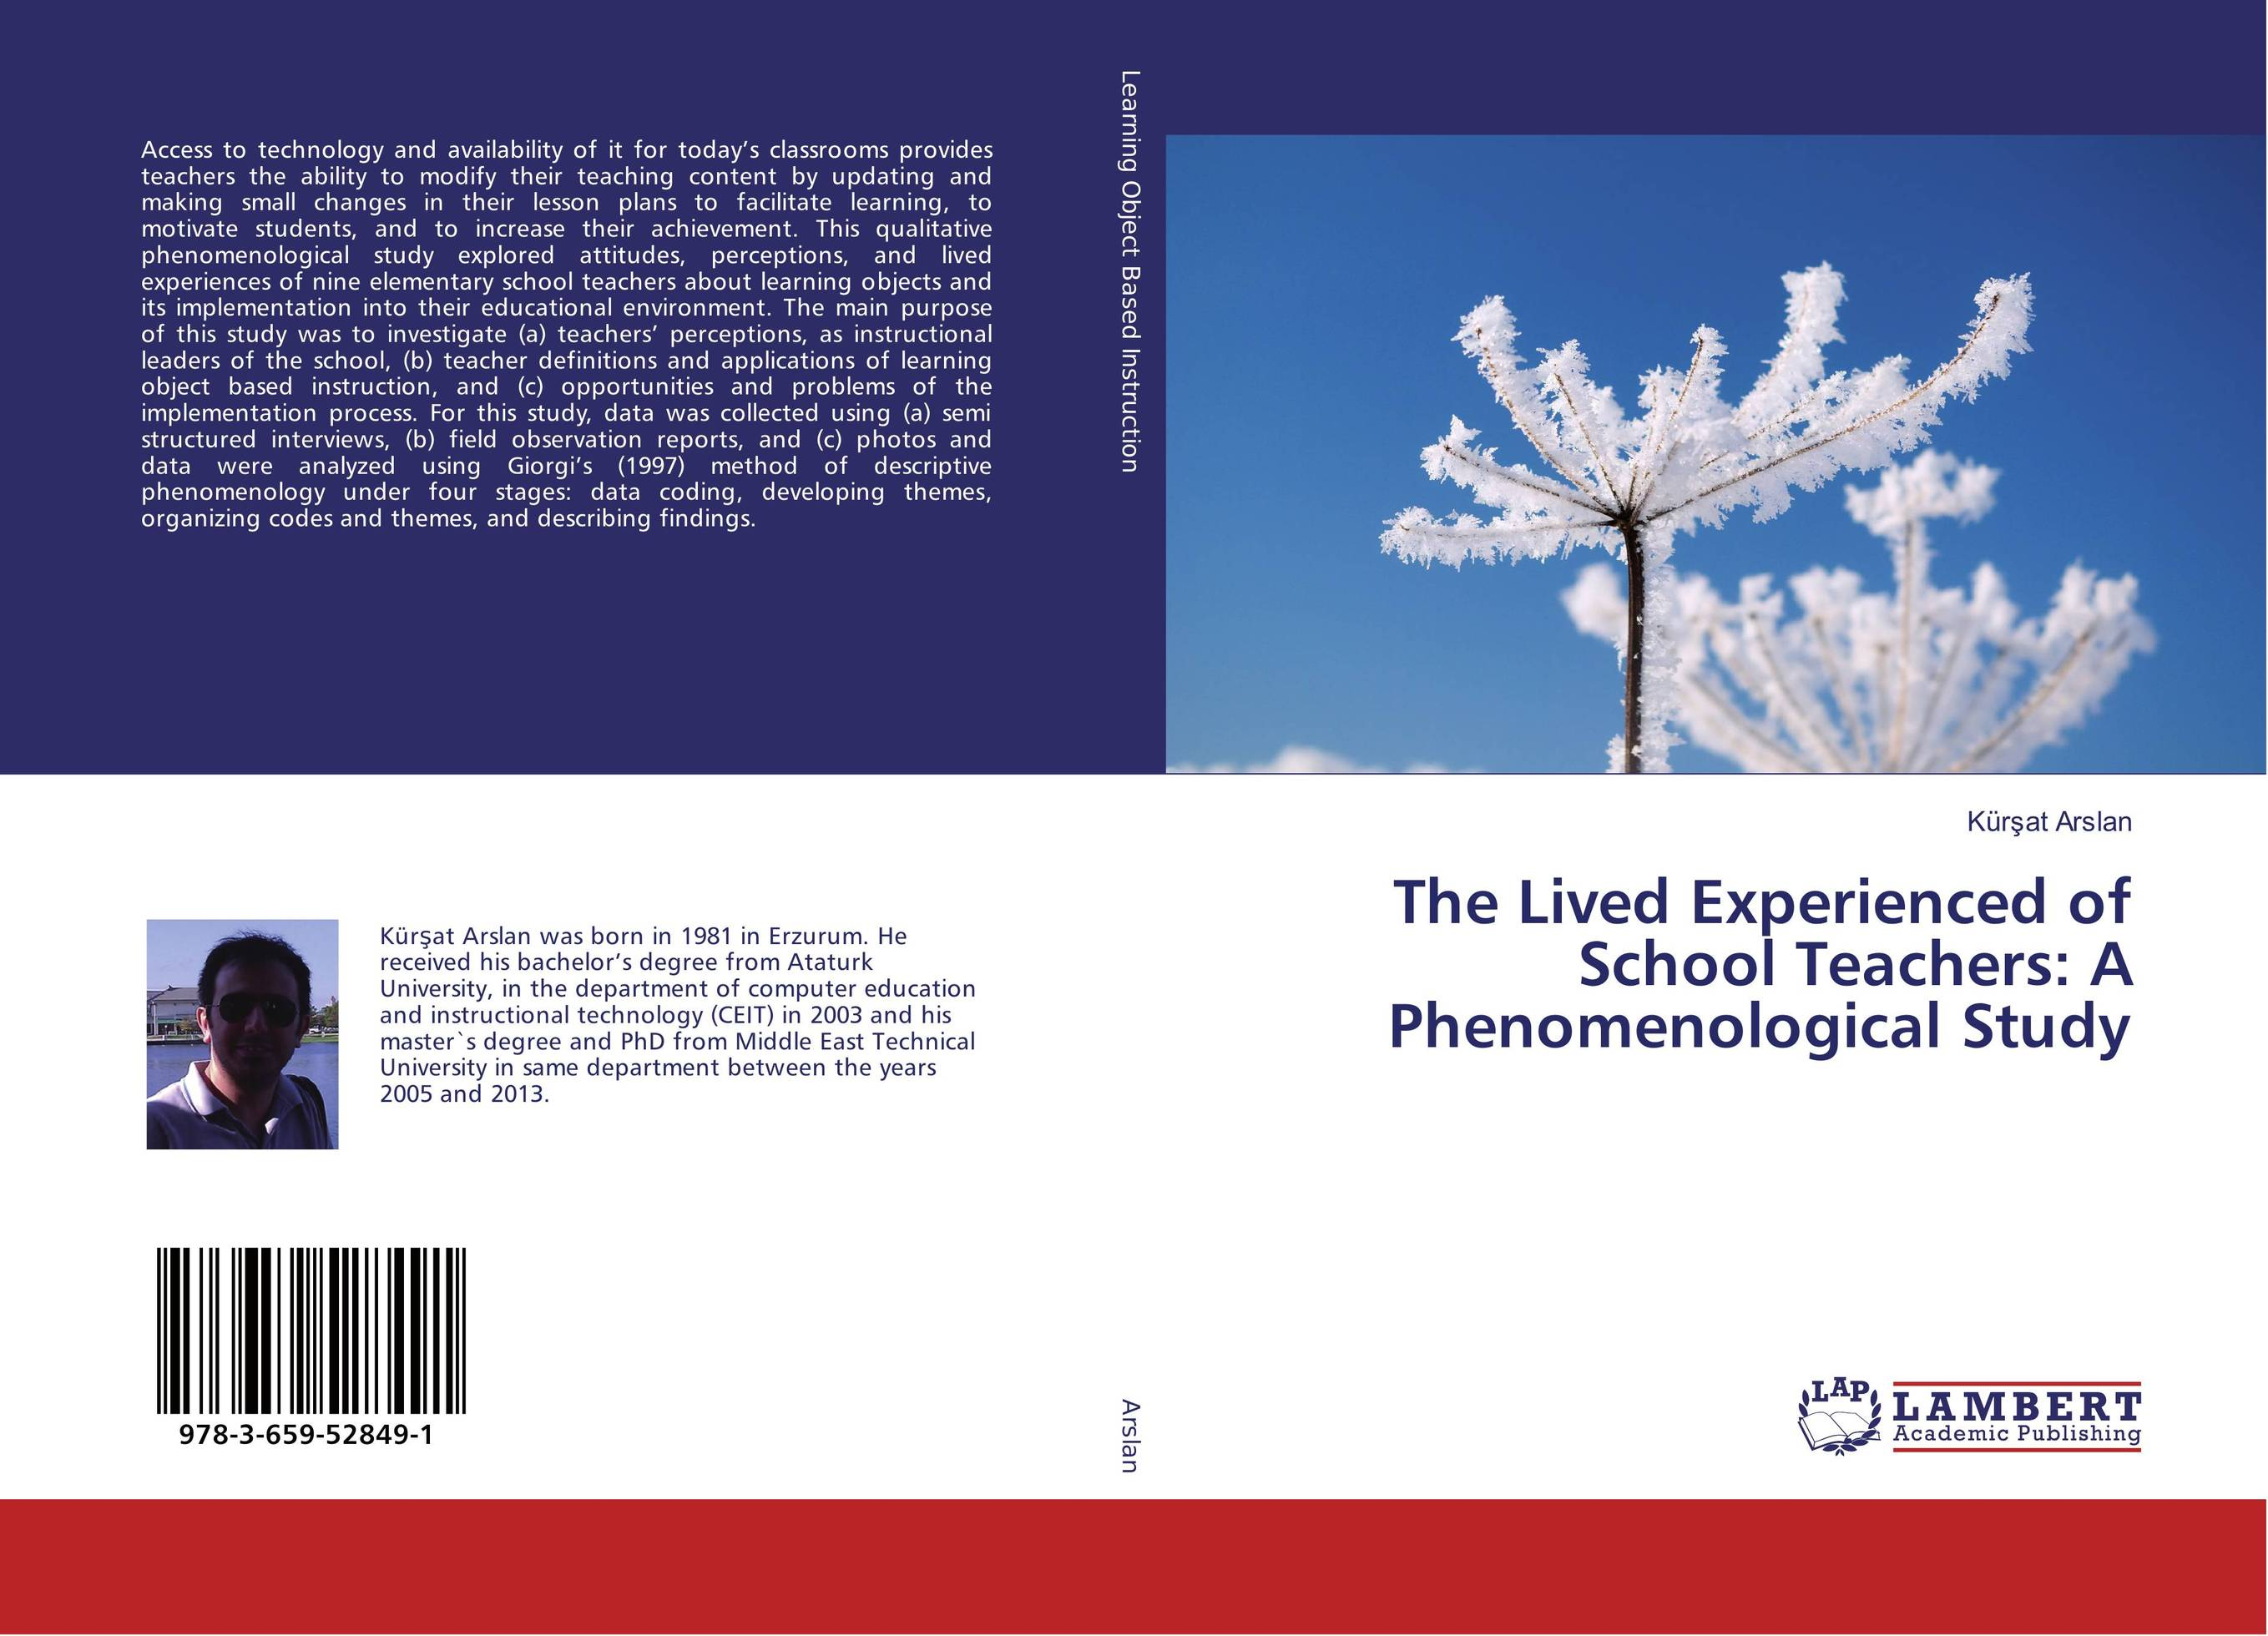 The Lived Experienced of School Teachers: A Phenomenological Study teachers' perceptions of the teacher evaluation instrument and process